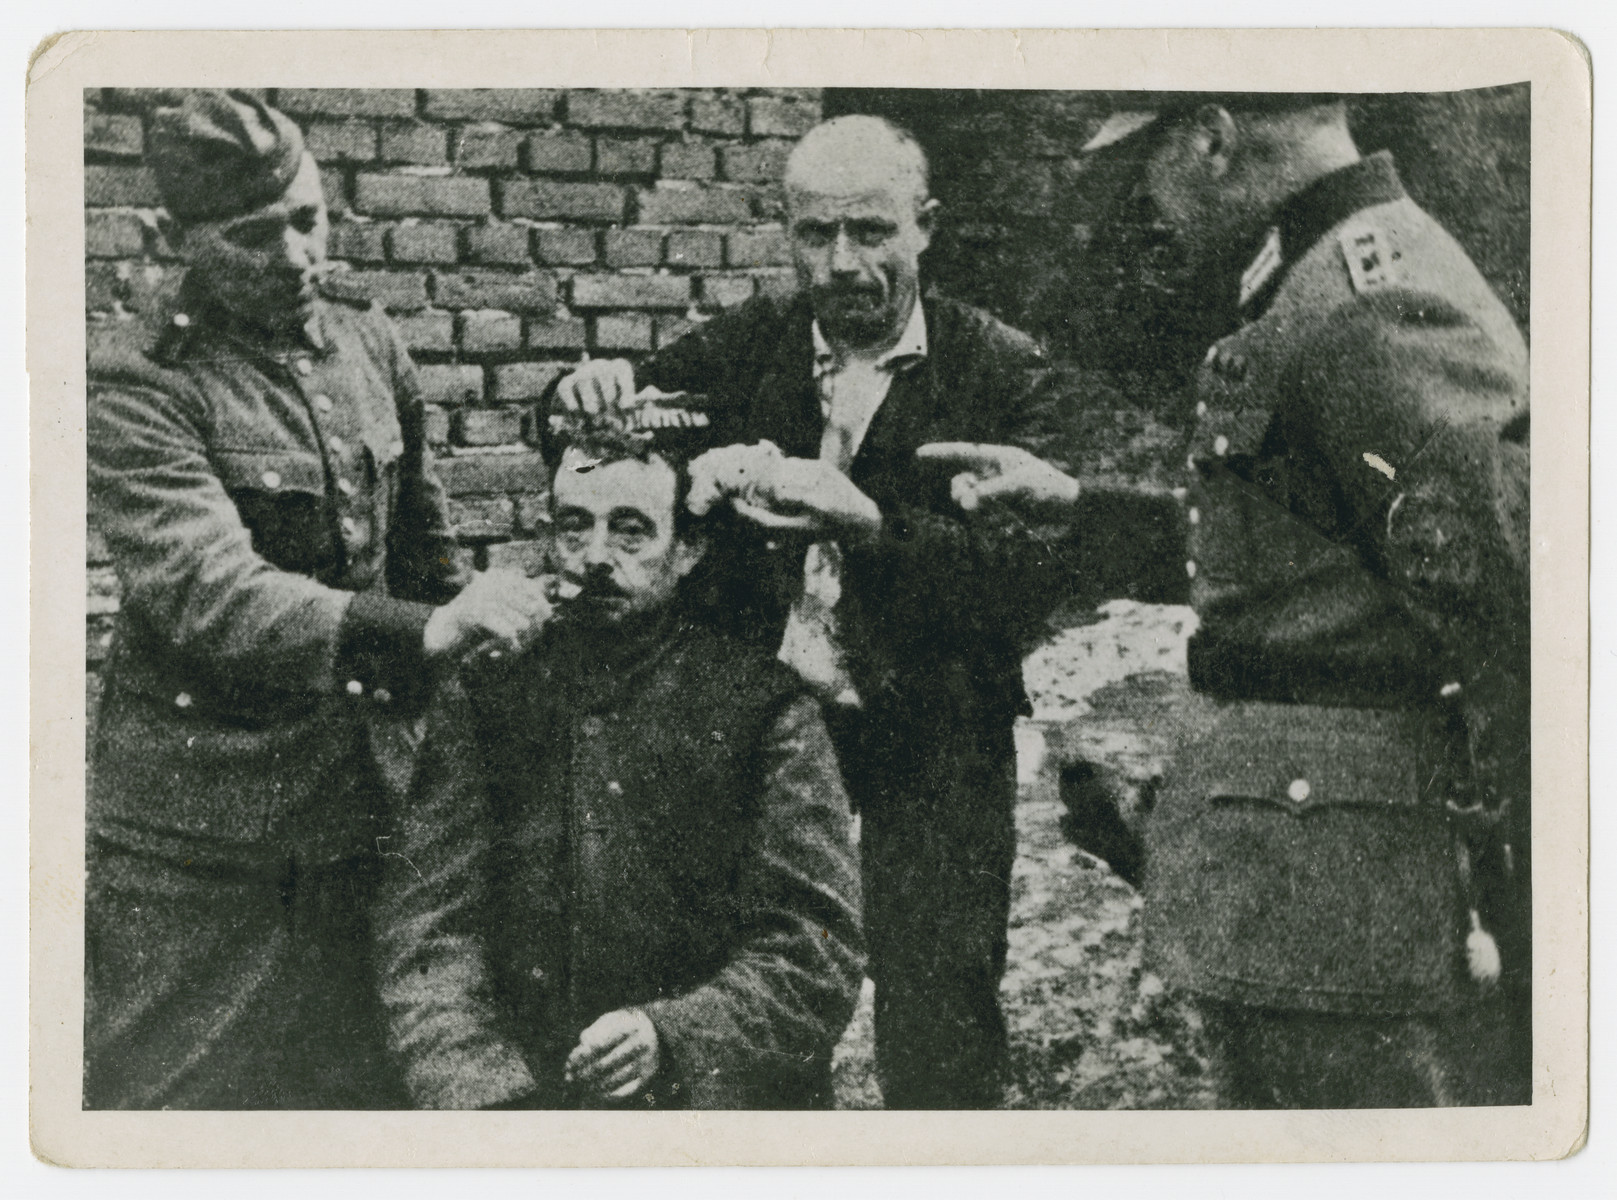 German soldiers force a man to shave the beard and hair of another [probably a religious Jew] in an act of public humiliation.